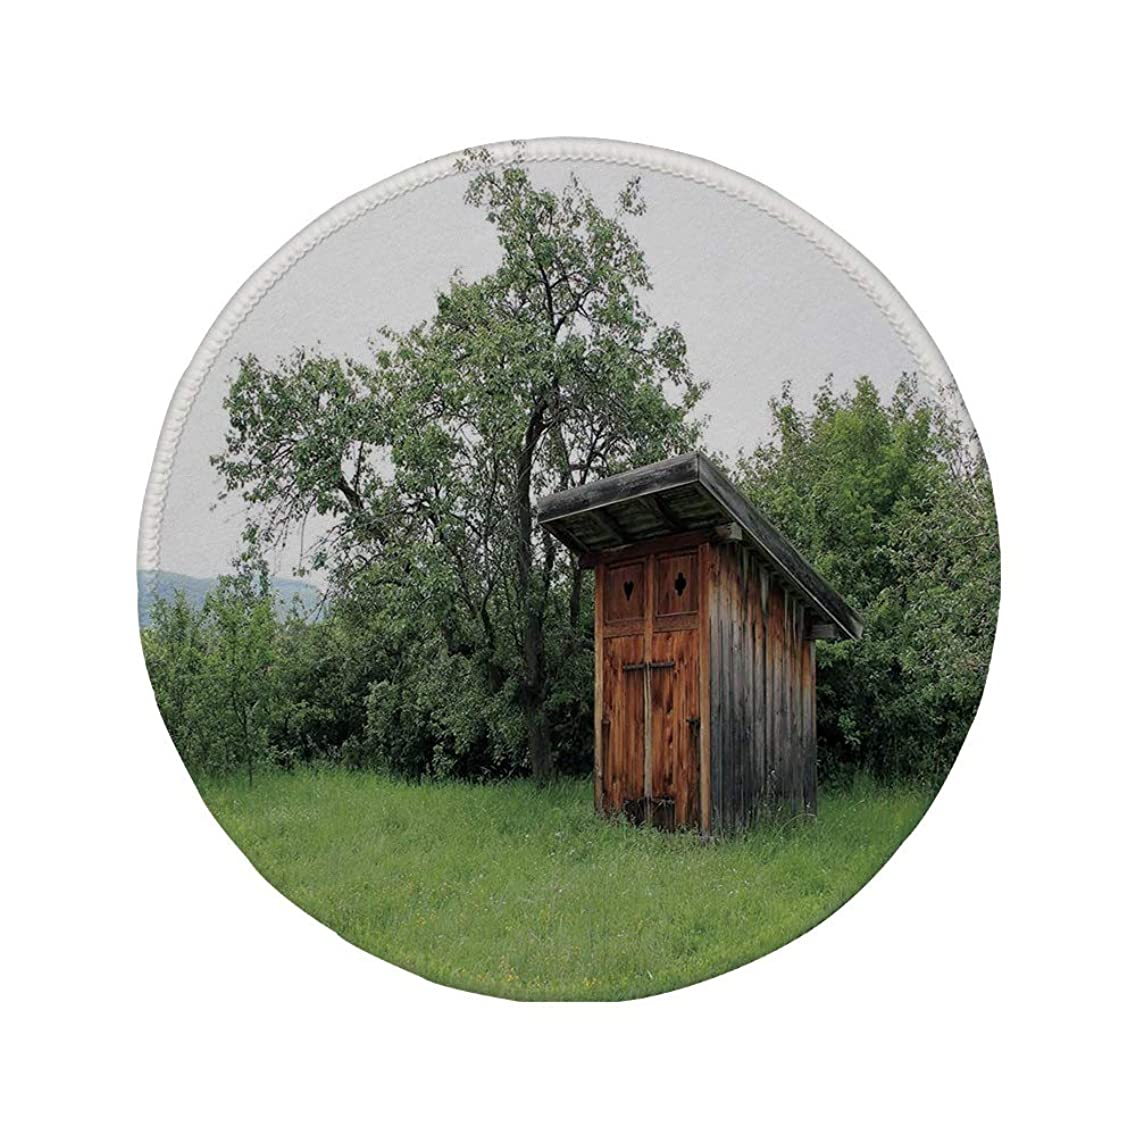 Non-Slip Rubber Round Mouse Pad,Outhouse,Wooden Little Hut Barn Shed Cottage in Nature Forest Image,Forest Green Light Green and Brown,11.8